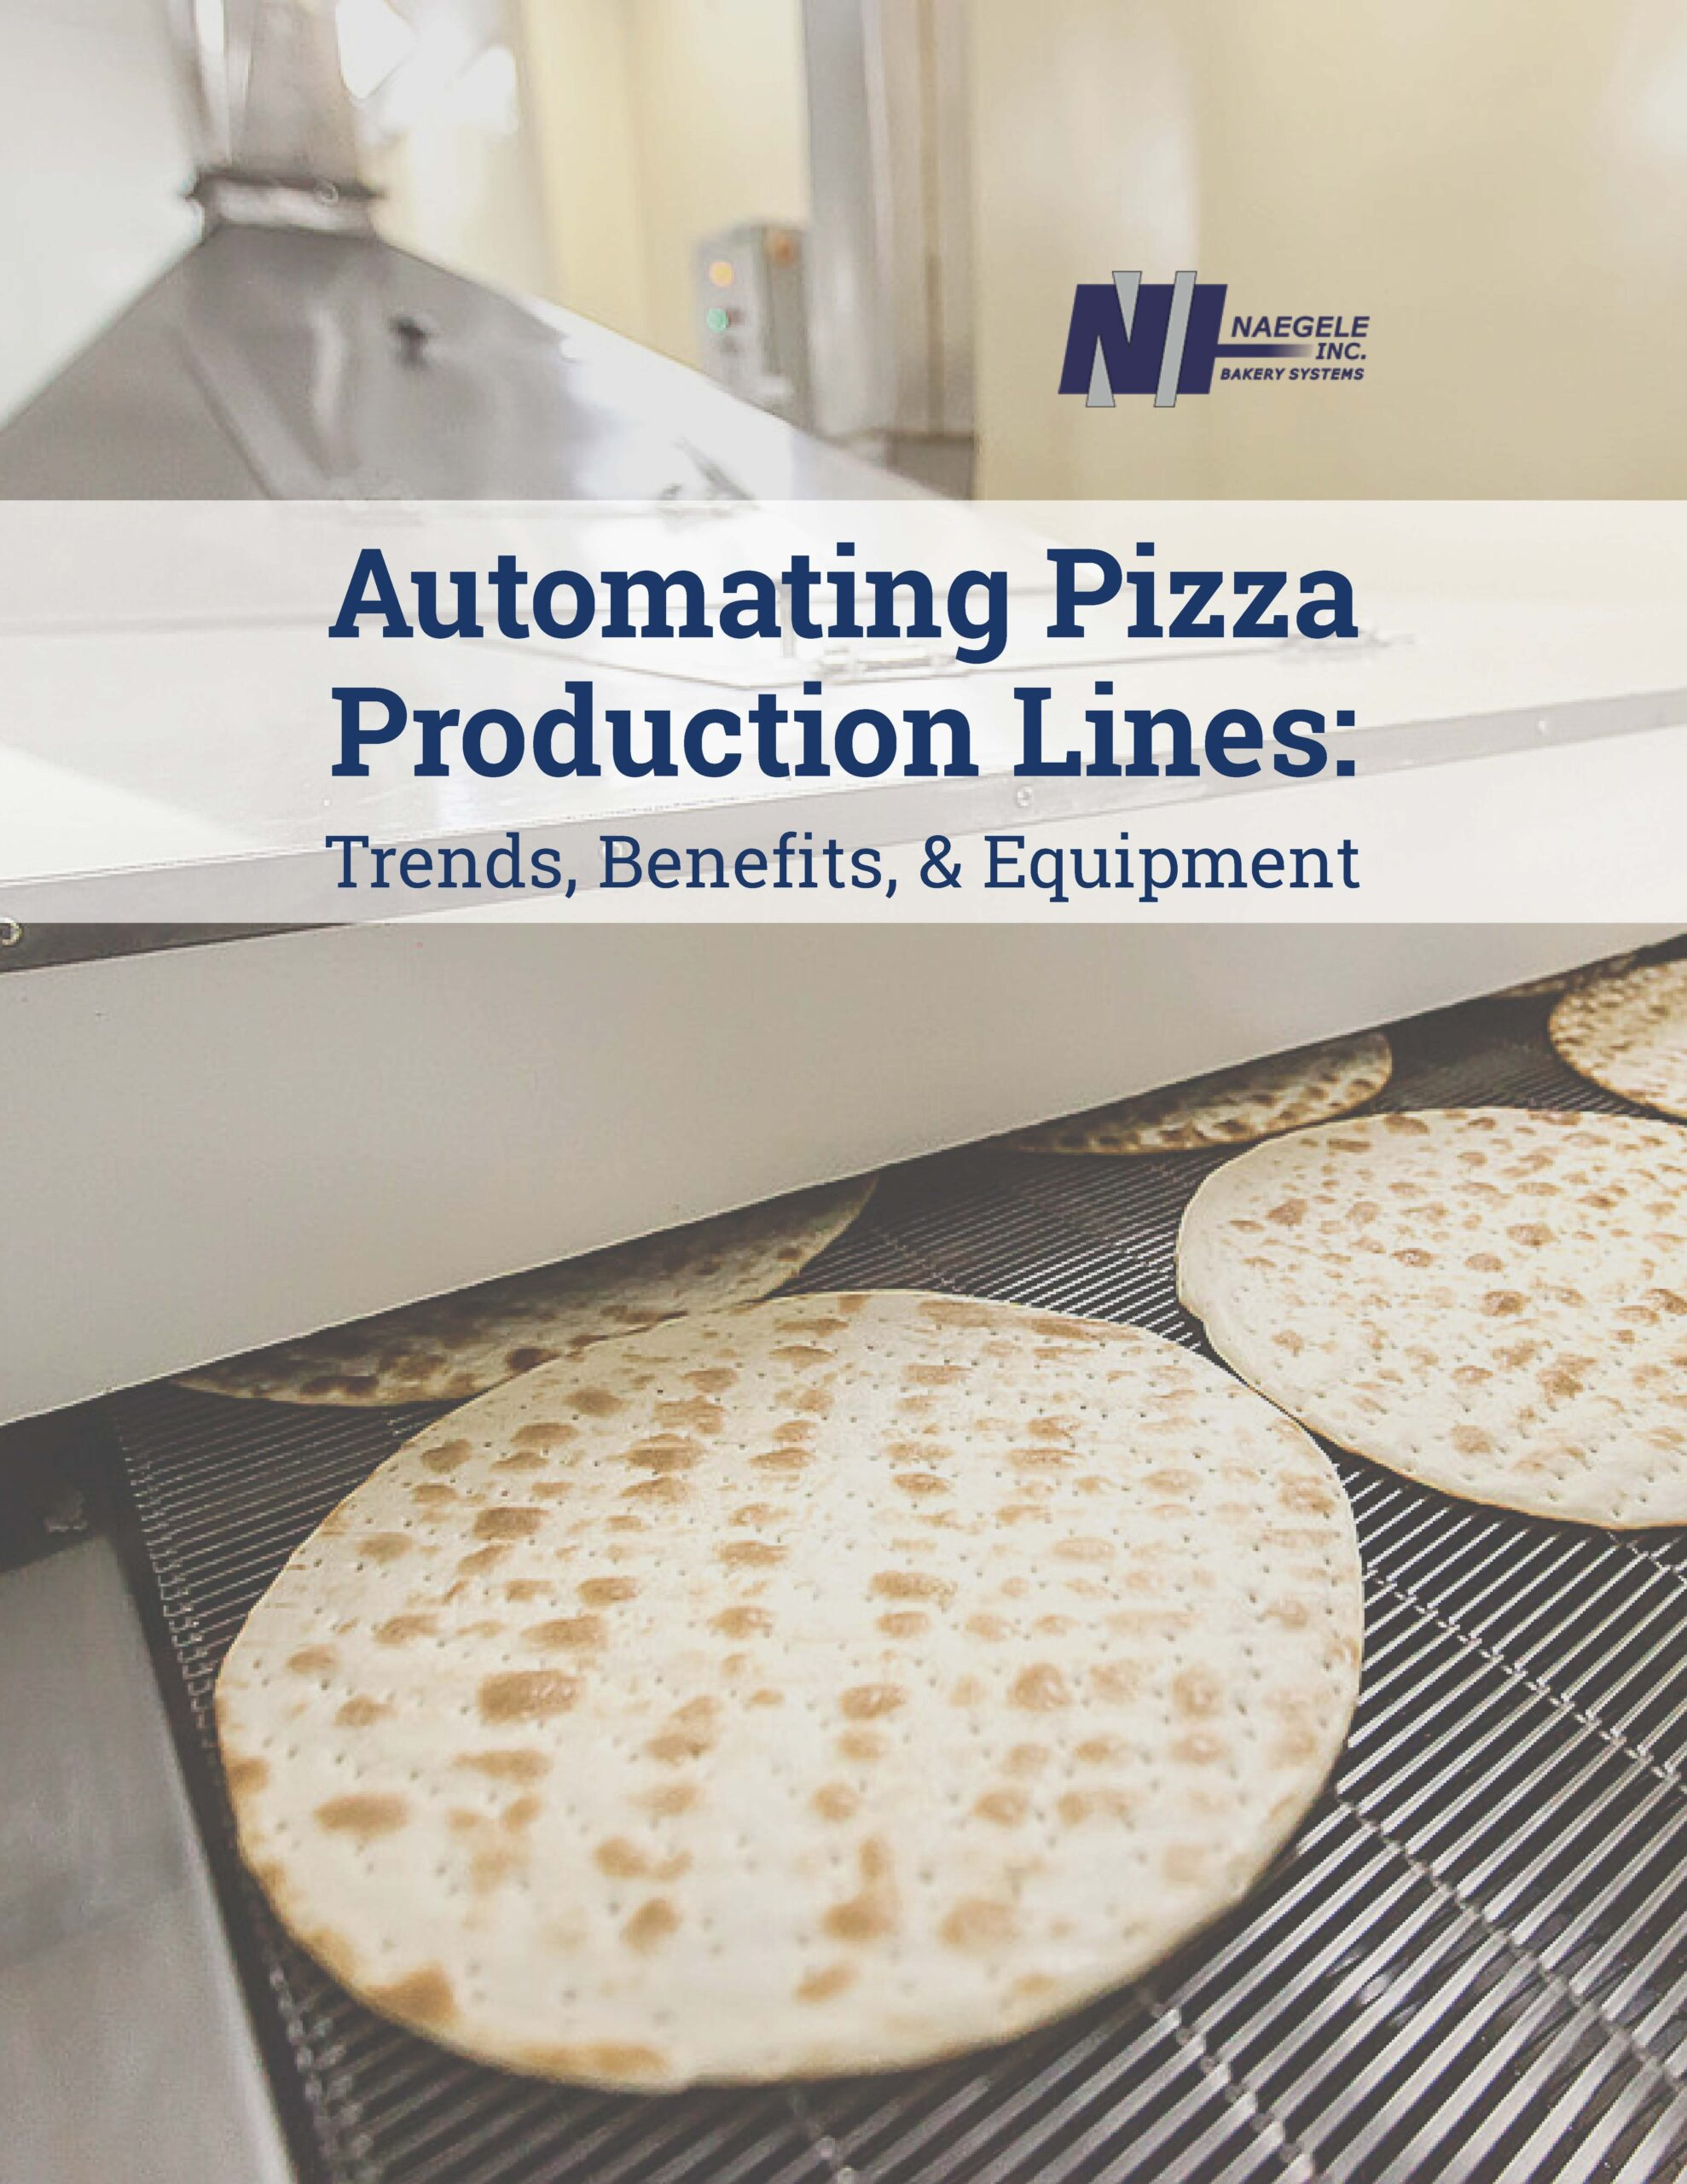 Are You a Pizza Manufacturer? Download Our Latest Ebook to Learn How to Automate Your Production Process